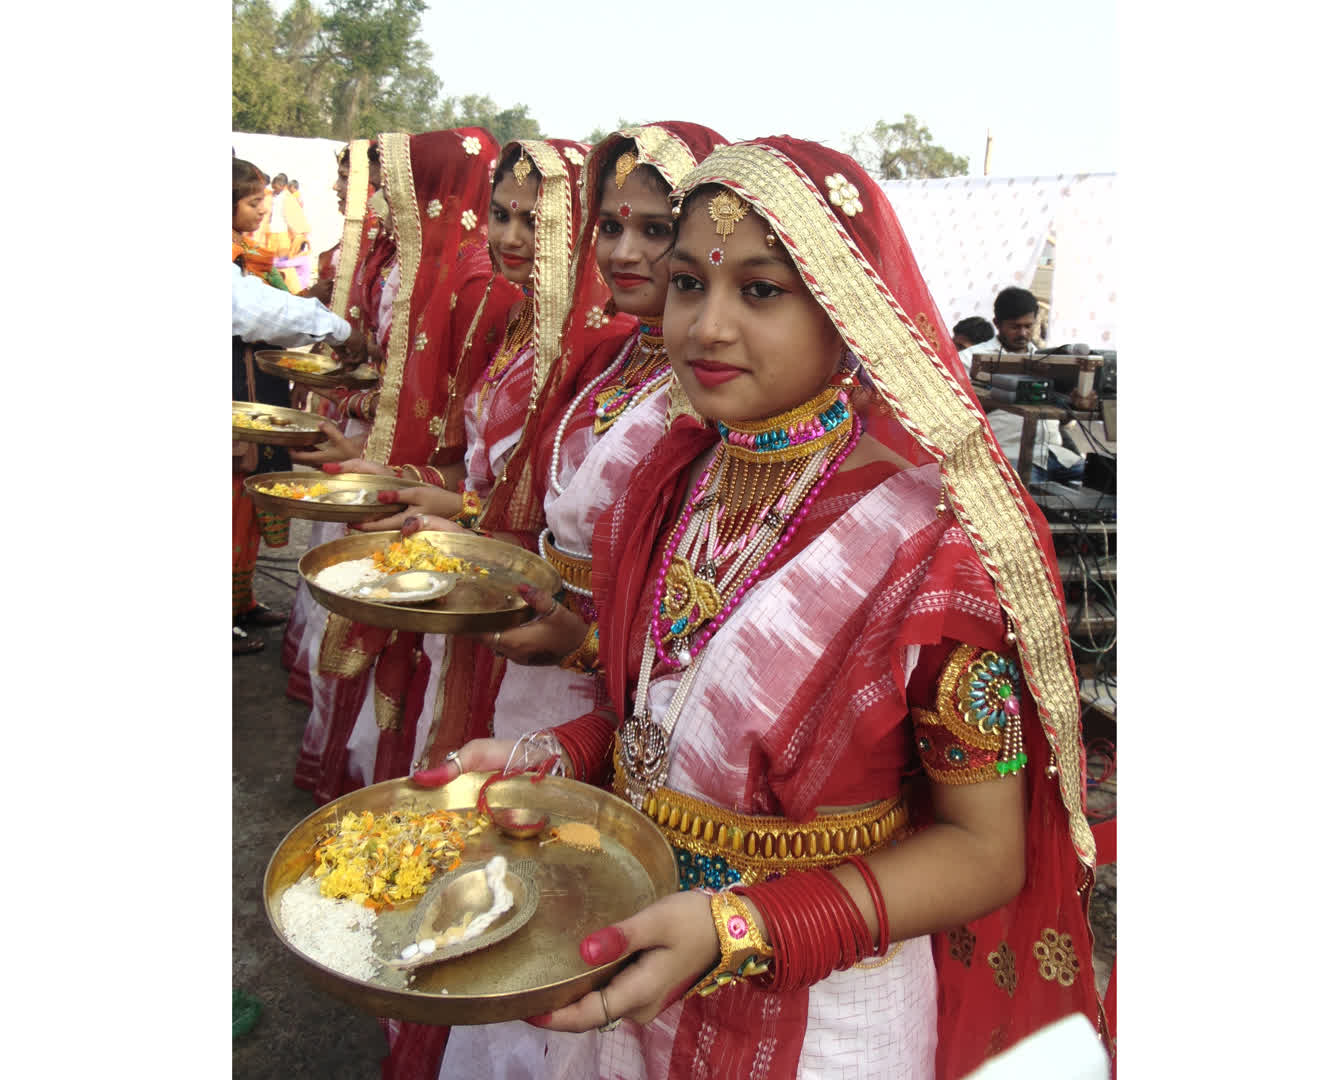 Young girls dressed up as wives of the merchants (sadhavani) bidding farewell to the merchants at Paradeep Port